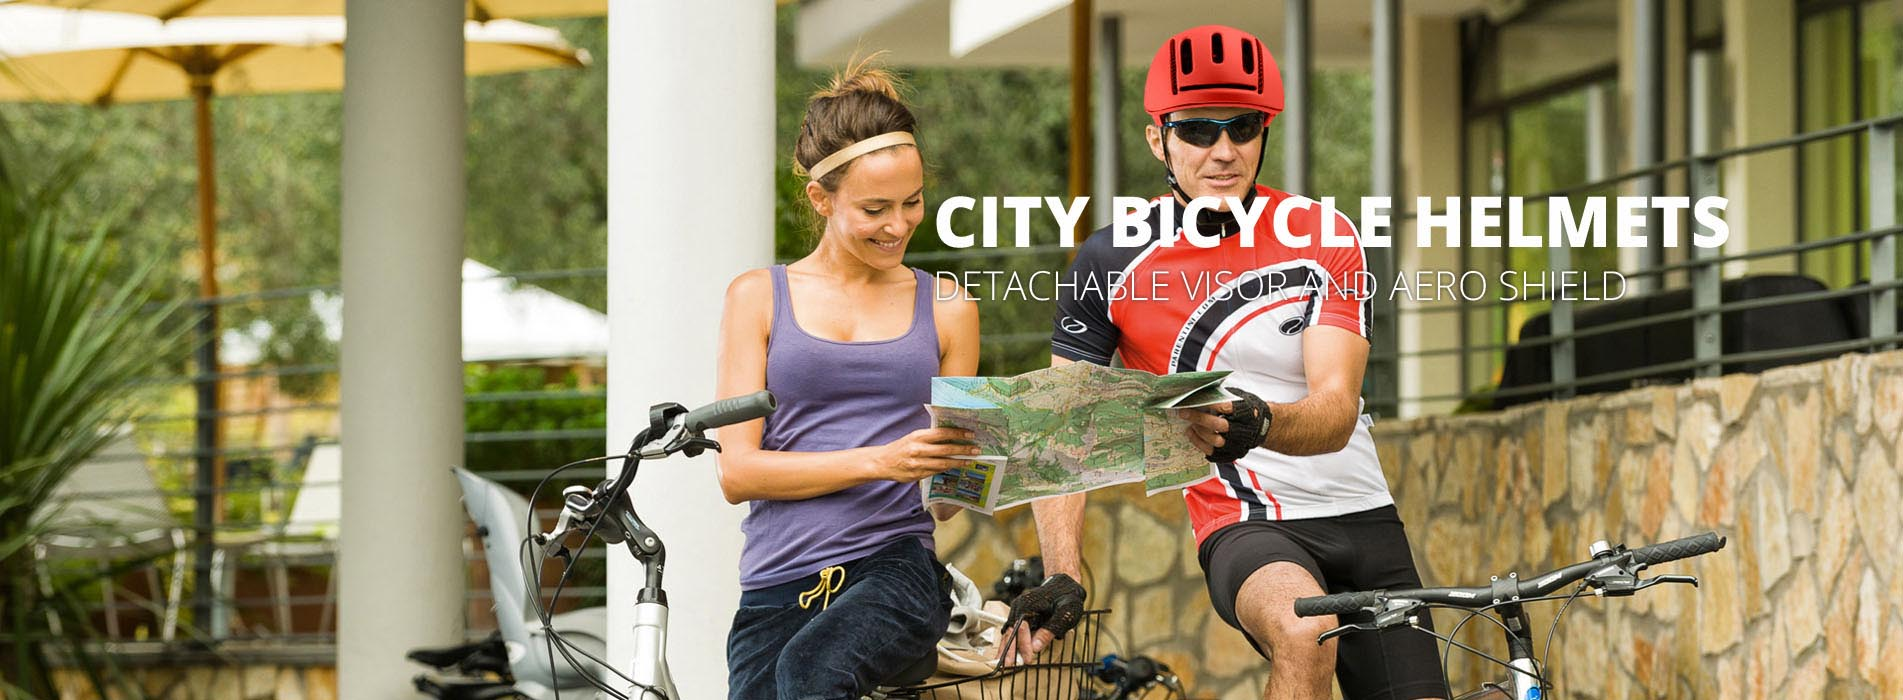 city bicycle helmet banner